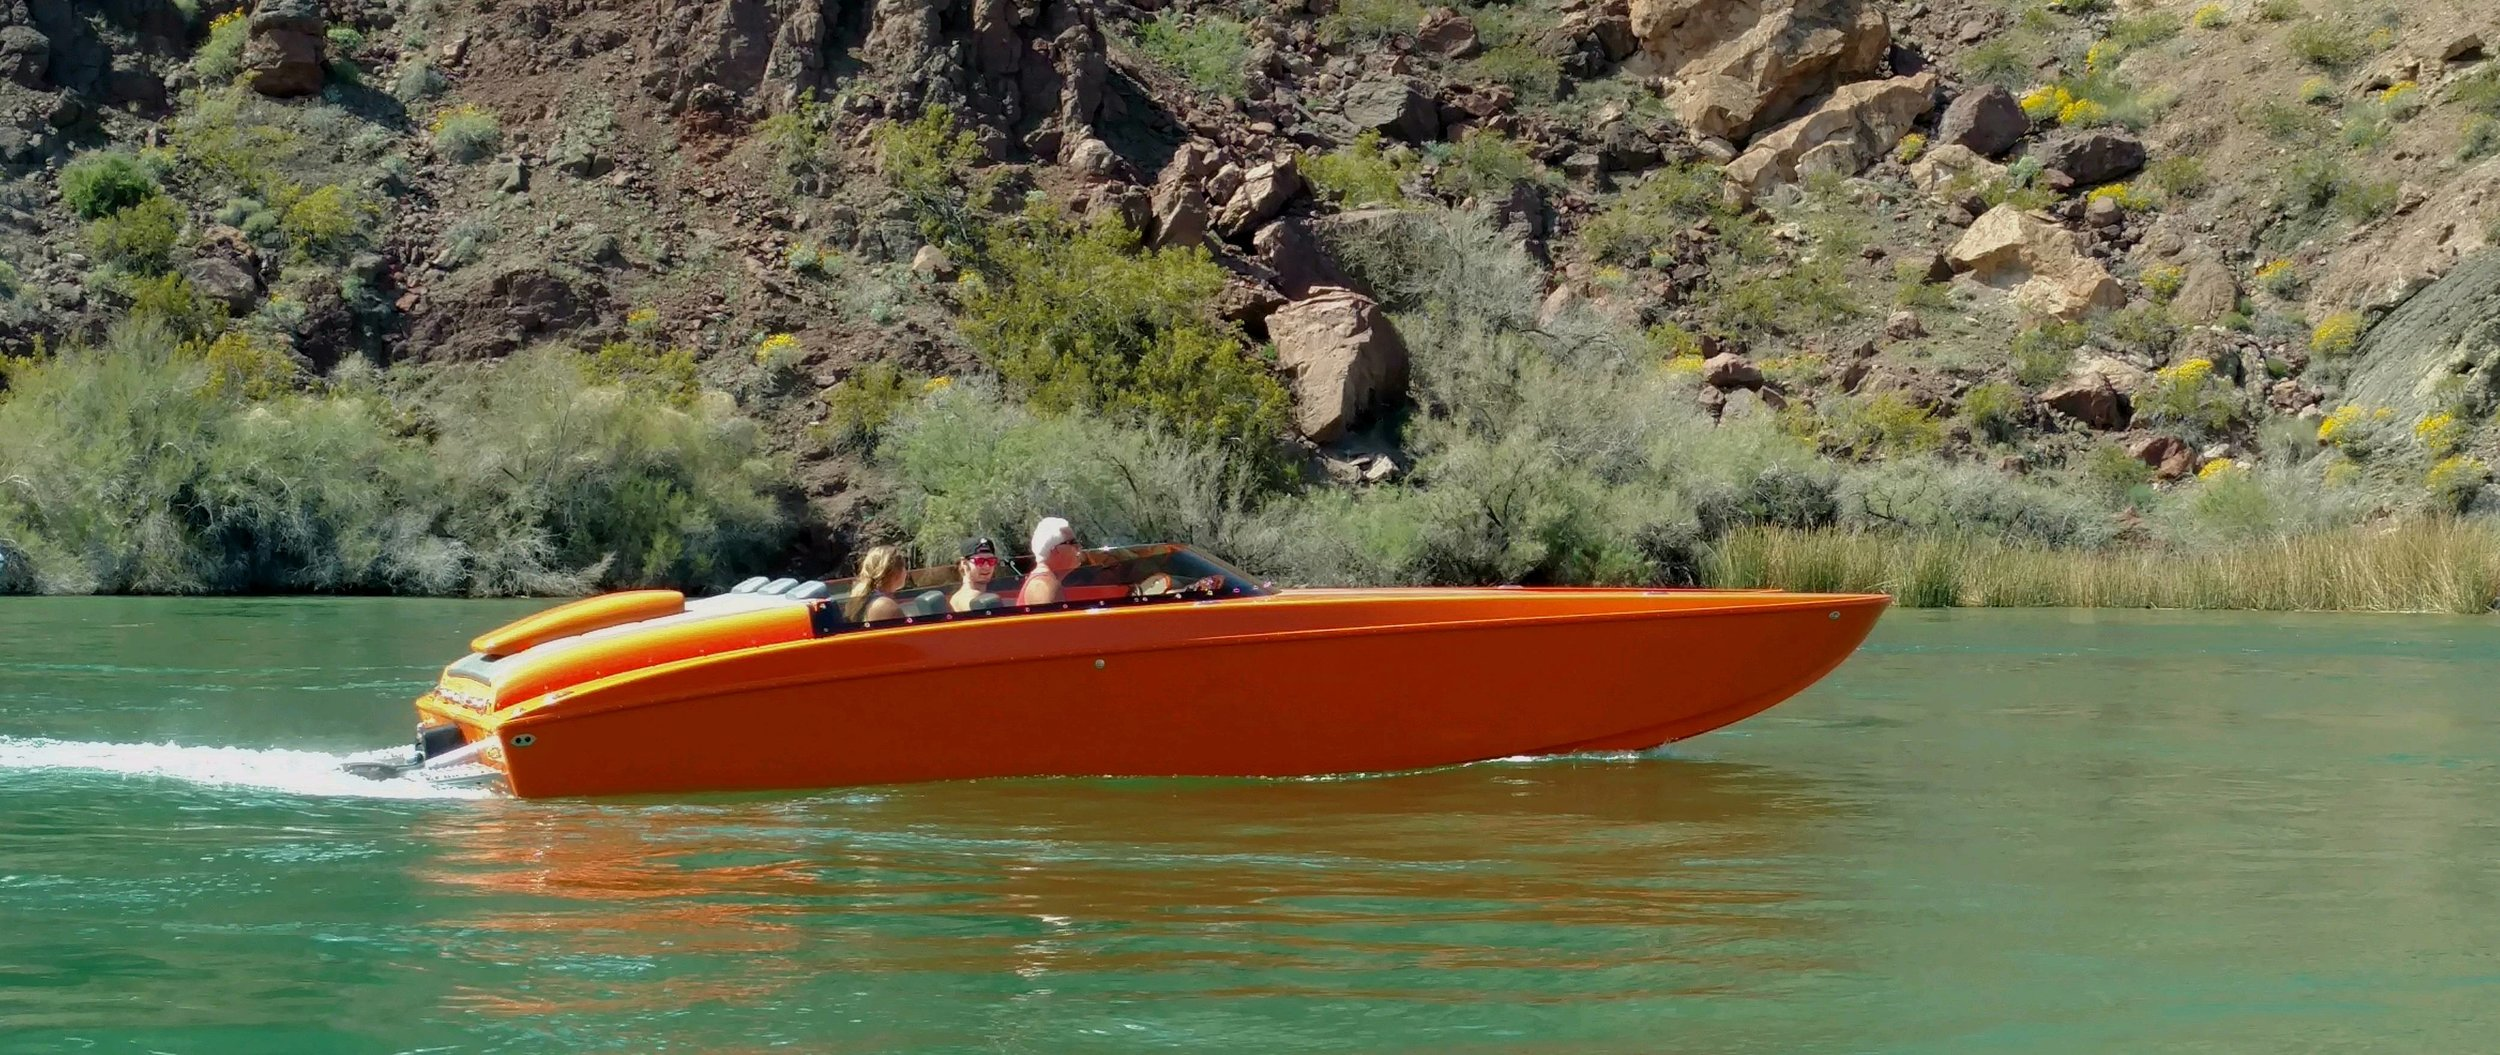 RPM 26 Redline orange on water.jpg